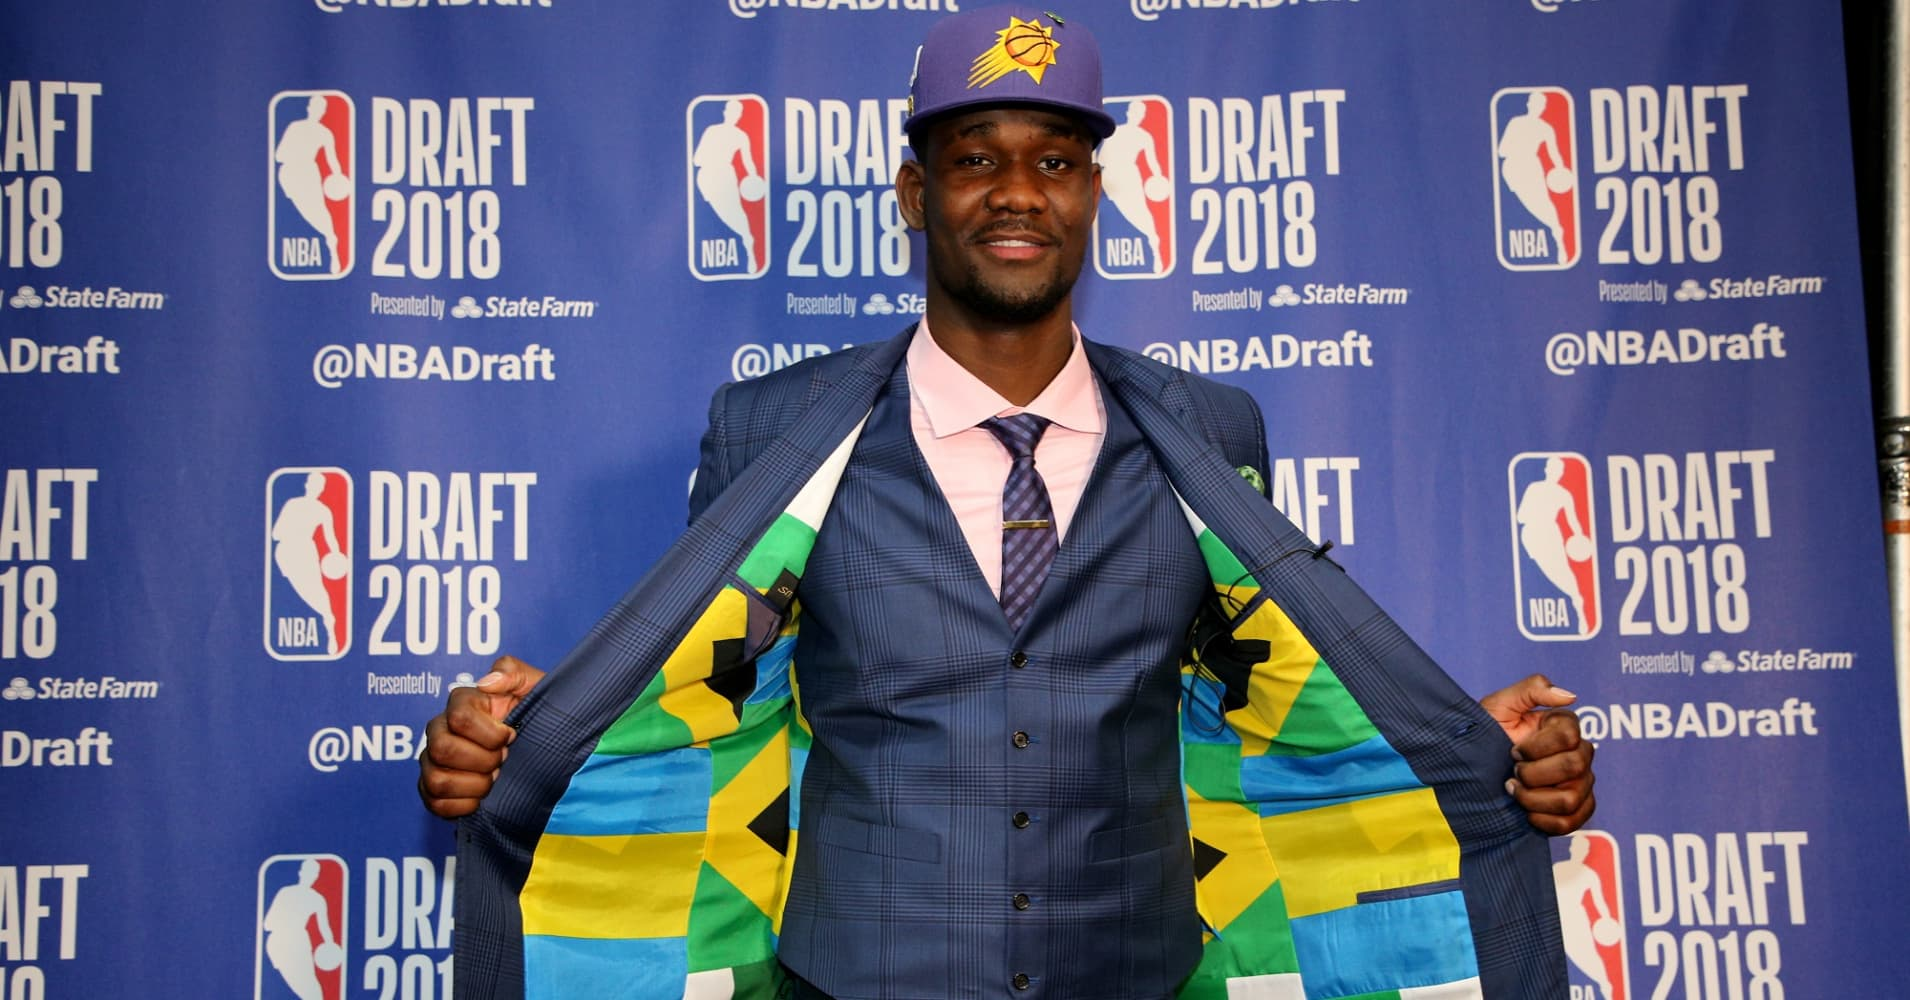 Deandre Ayton at the 2018 NBA Draft in Brooklyn, New York.